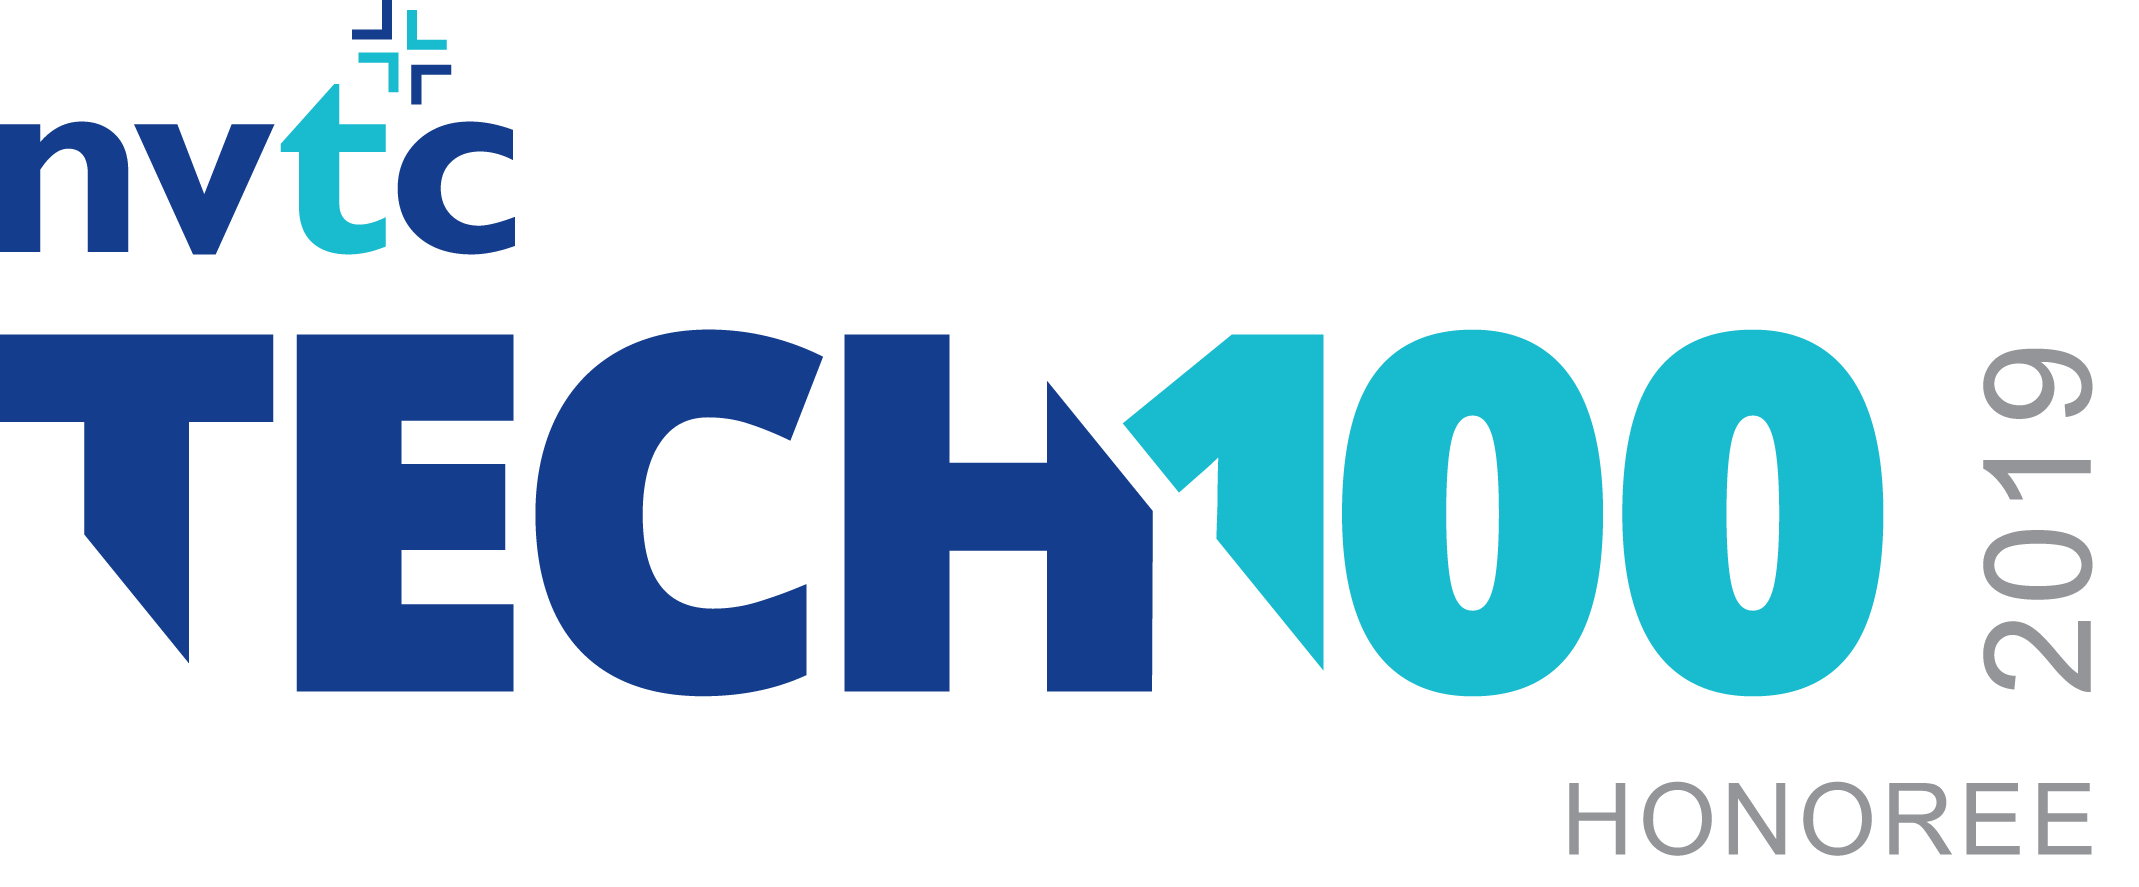 PFP Cybersecurity Named Among NVTC 2019 Tech 100 Honorees